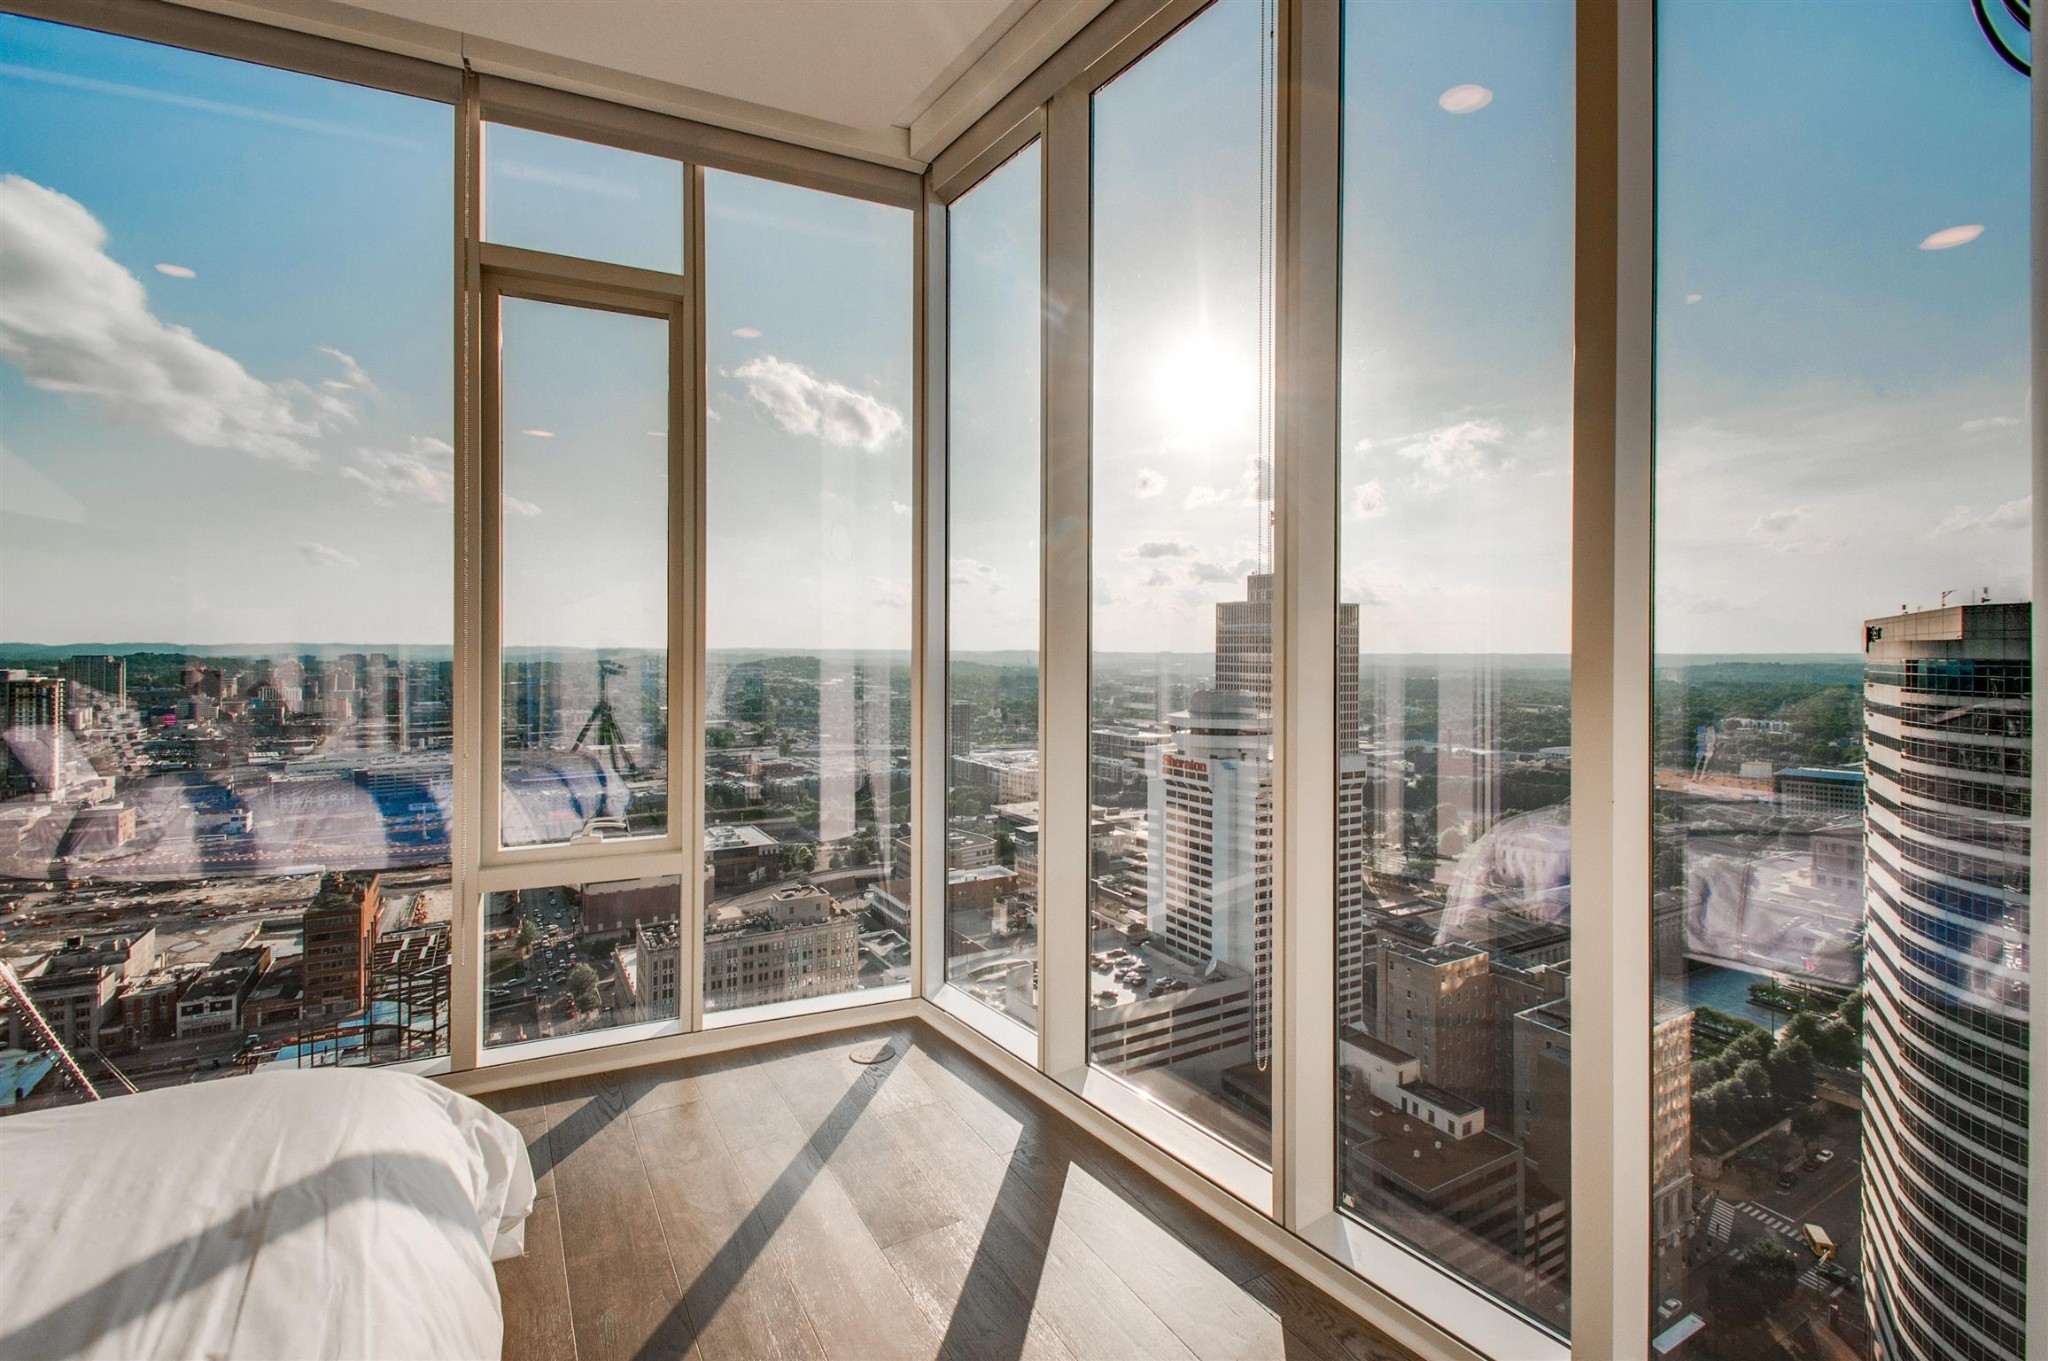 Sales Center Now Open 10:00-5:00 M-F, Sat 11-5. Sun. 1-5. Step into sophistication & luxury living at this elegant condo with 2 amenity floors worthy of Park Ave NYC. Coveted for its unparalleled Nashville views, modern amenities & stylish decor. Unit features upgraded finishes throughout, hardwood floors, a gas range, ample storage, and more! 1 parking space included. Walk to venues, cultural attractions, top restaurants & Nashville landmarks.